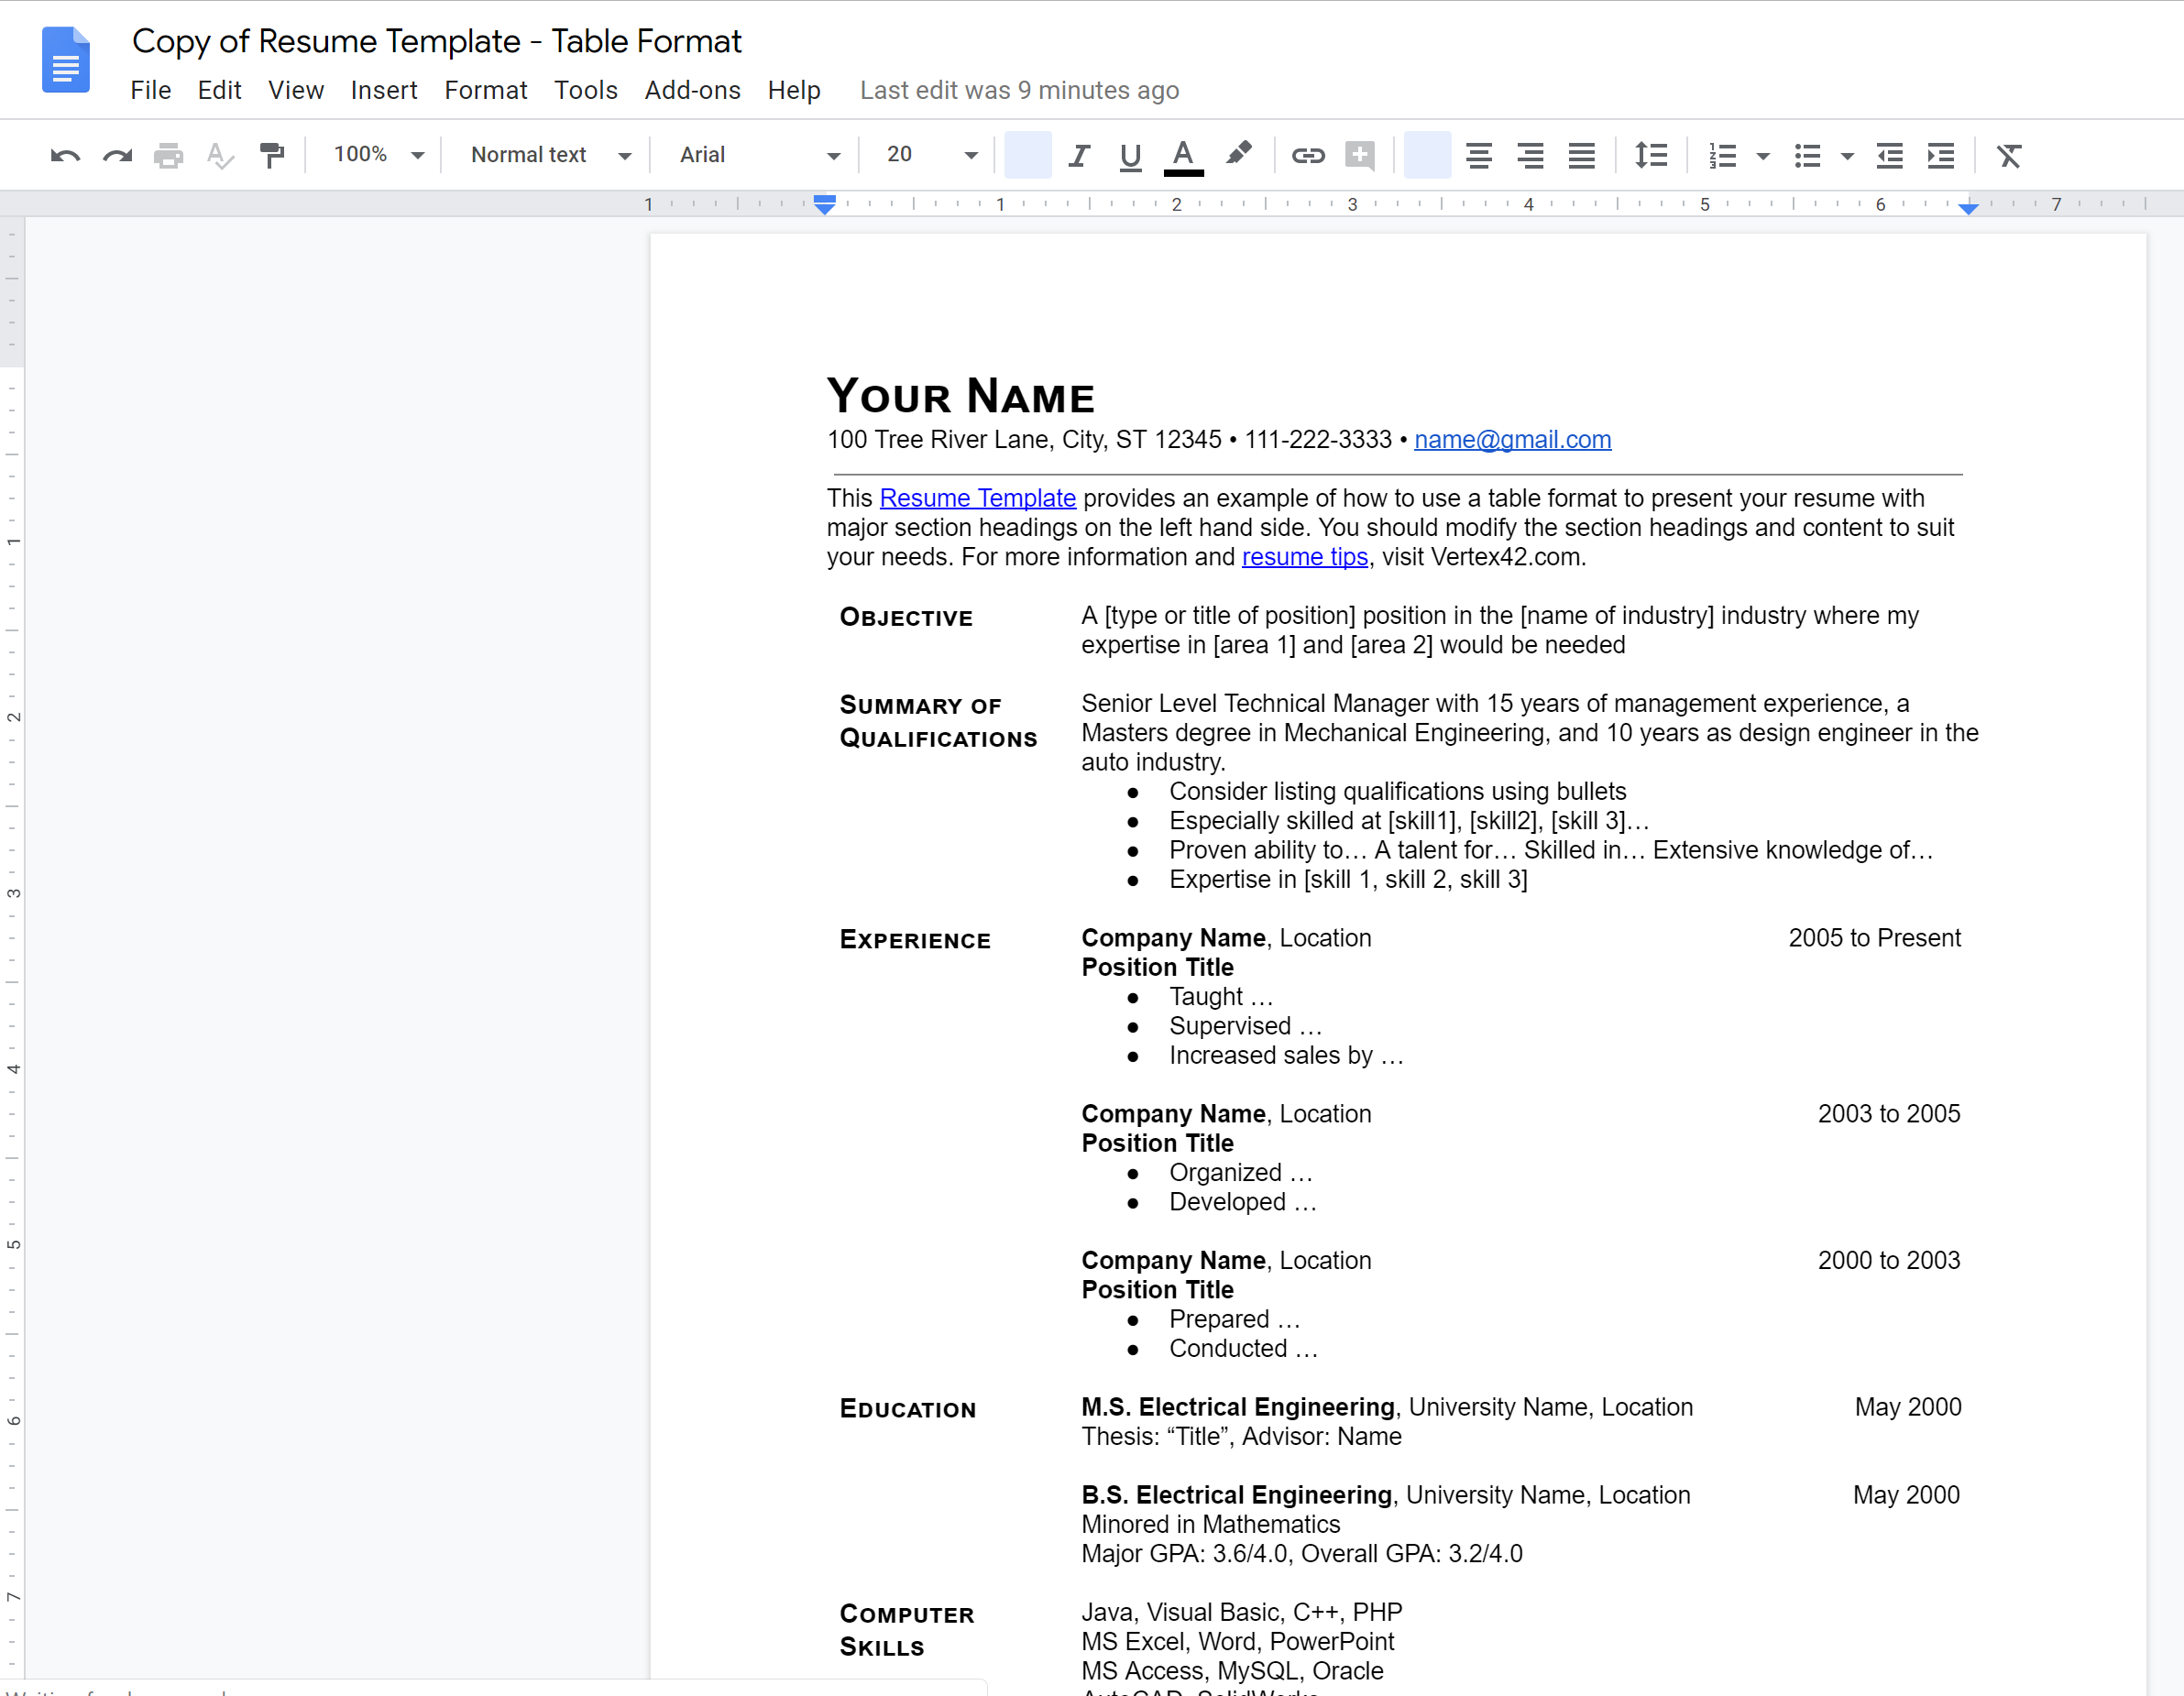 image depicting a sample resume template